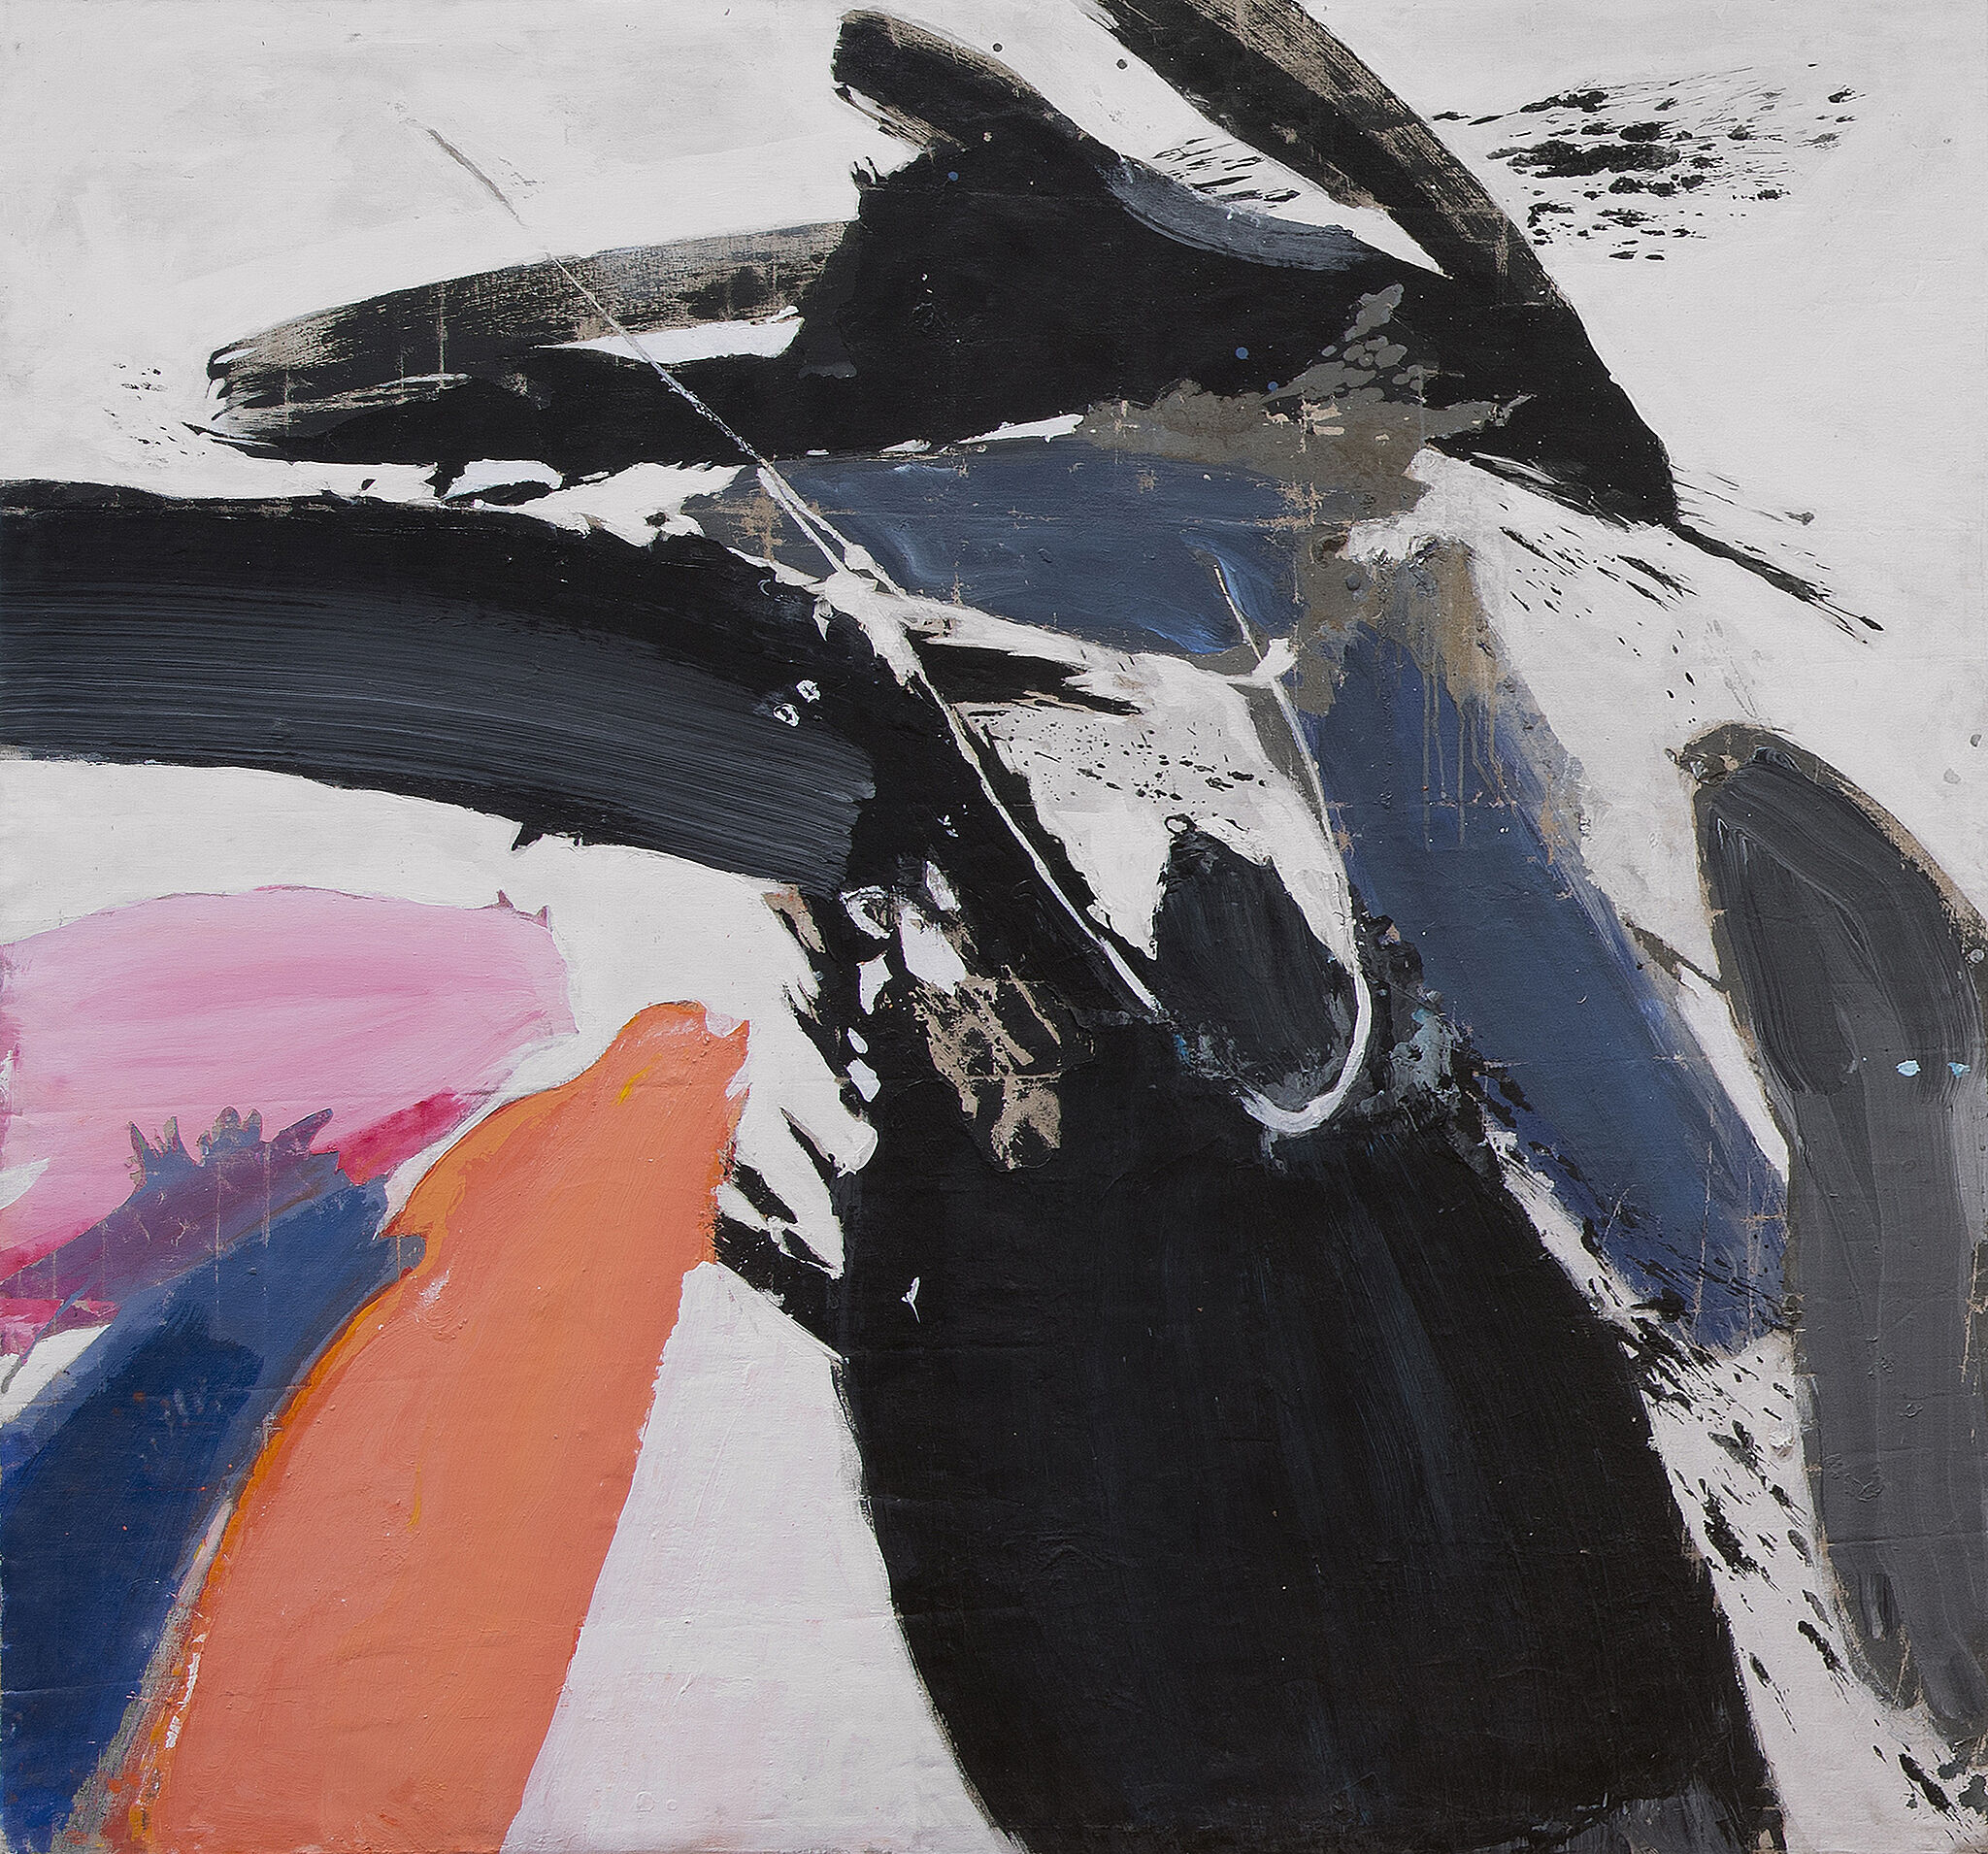 An abstract painting with strokes of orange, blue, pink, and black.